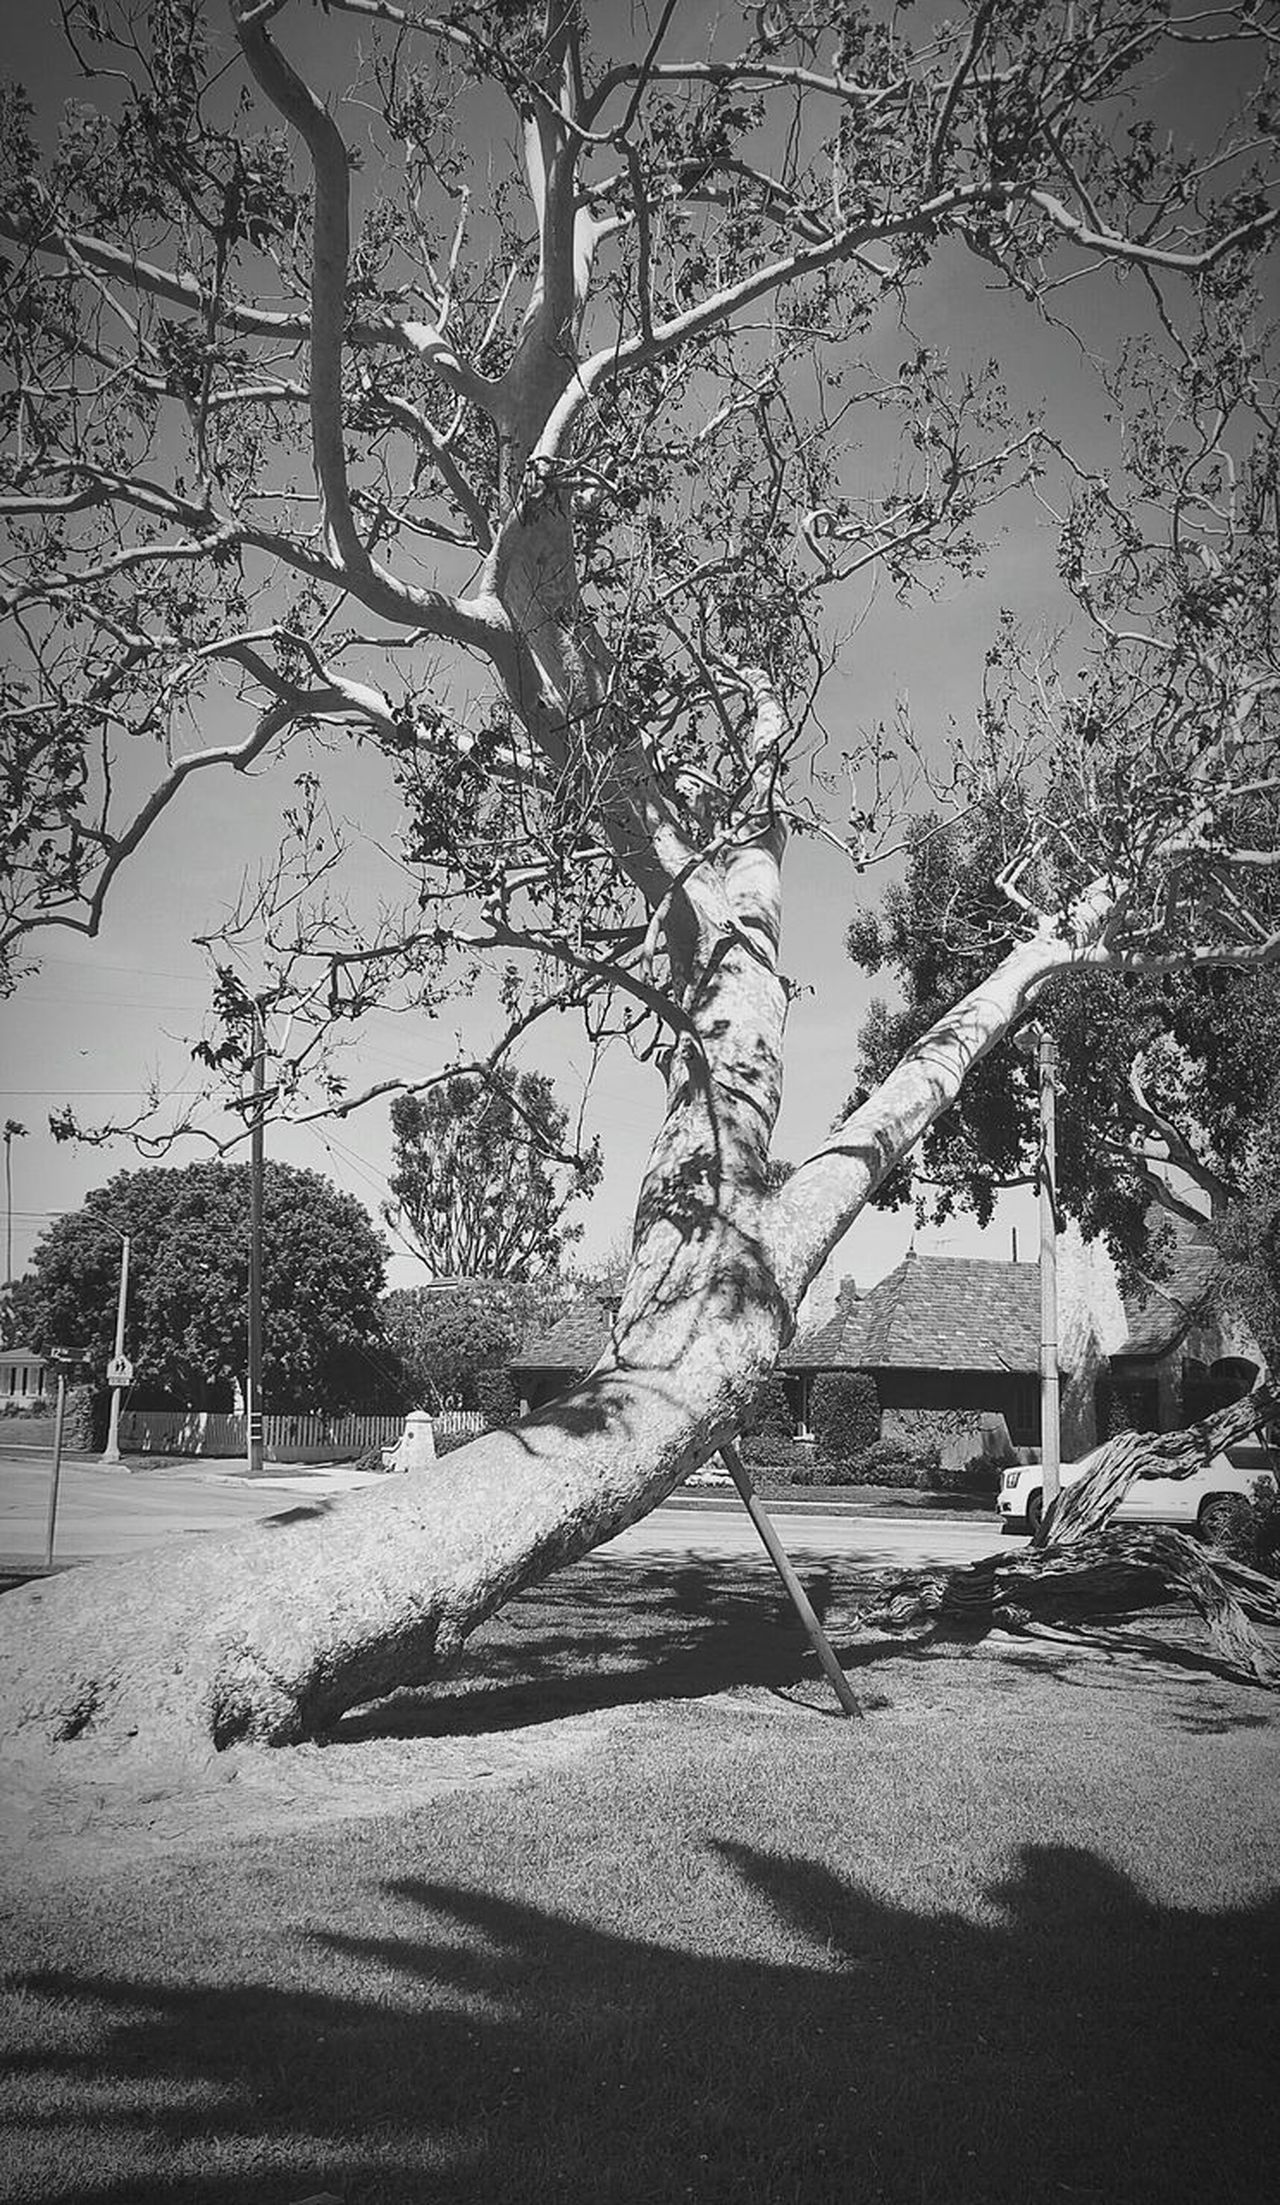 Tree Nature No People Outdoors Growth Day Beauty In Nature Willow Tree Park Huntington Beach Downtown Blackandwhite Photography Parks And Recreation Walking Around Nature SpringBreak